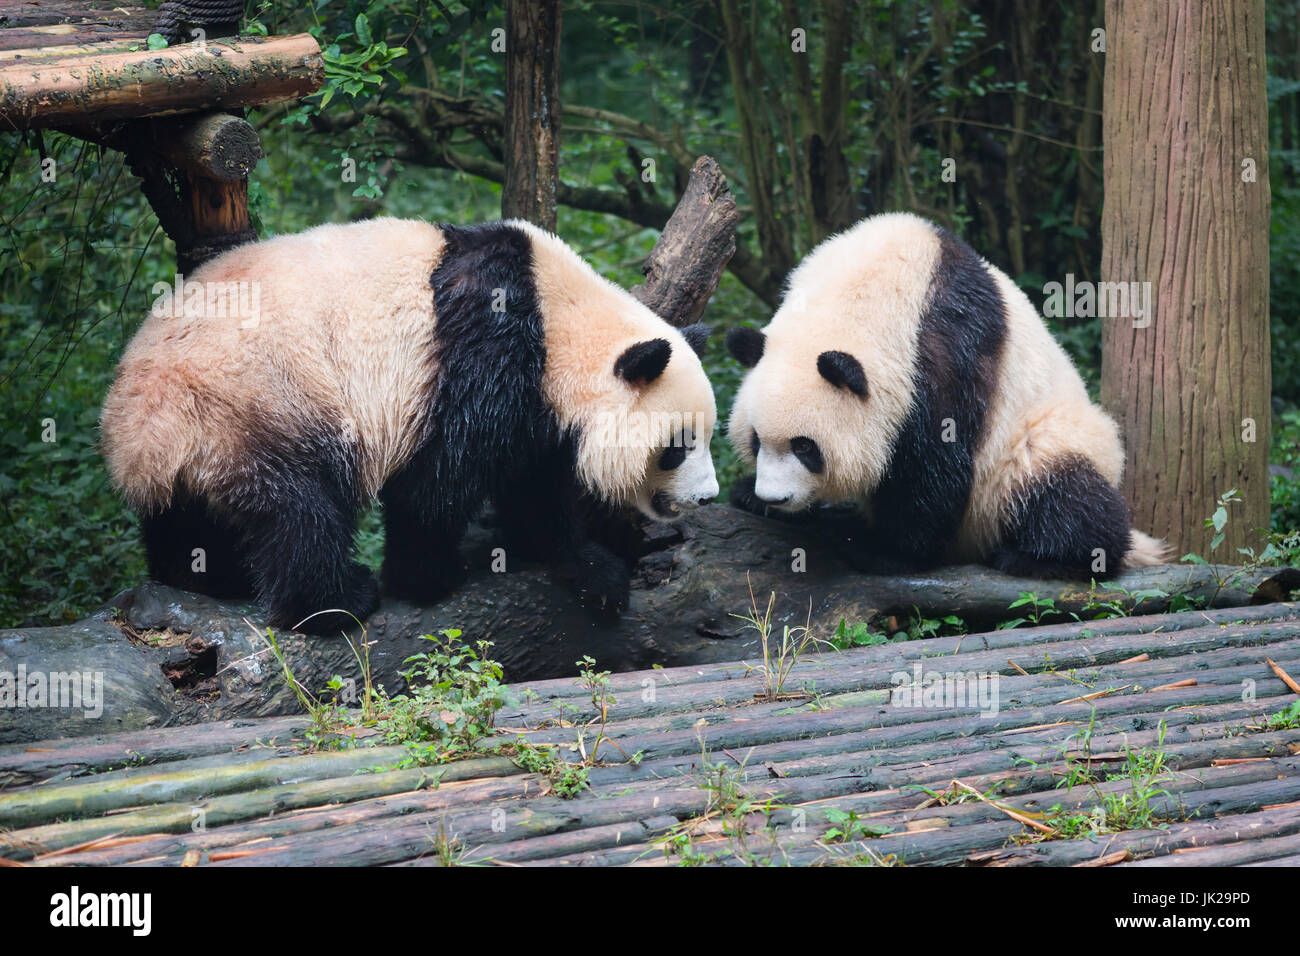 two giant panda cubs looking at each other, Chengdu, Sichuan Province, China - Stock Image